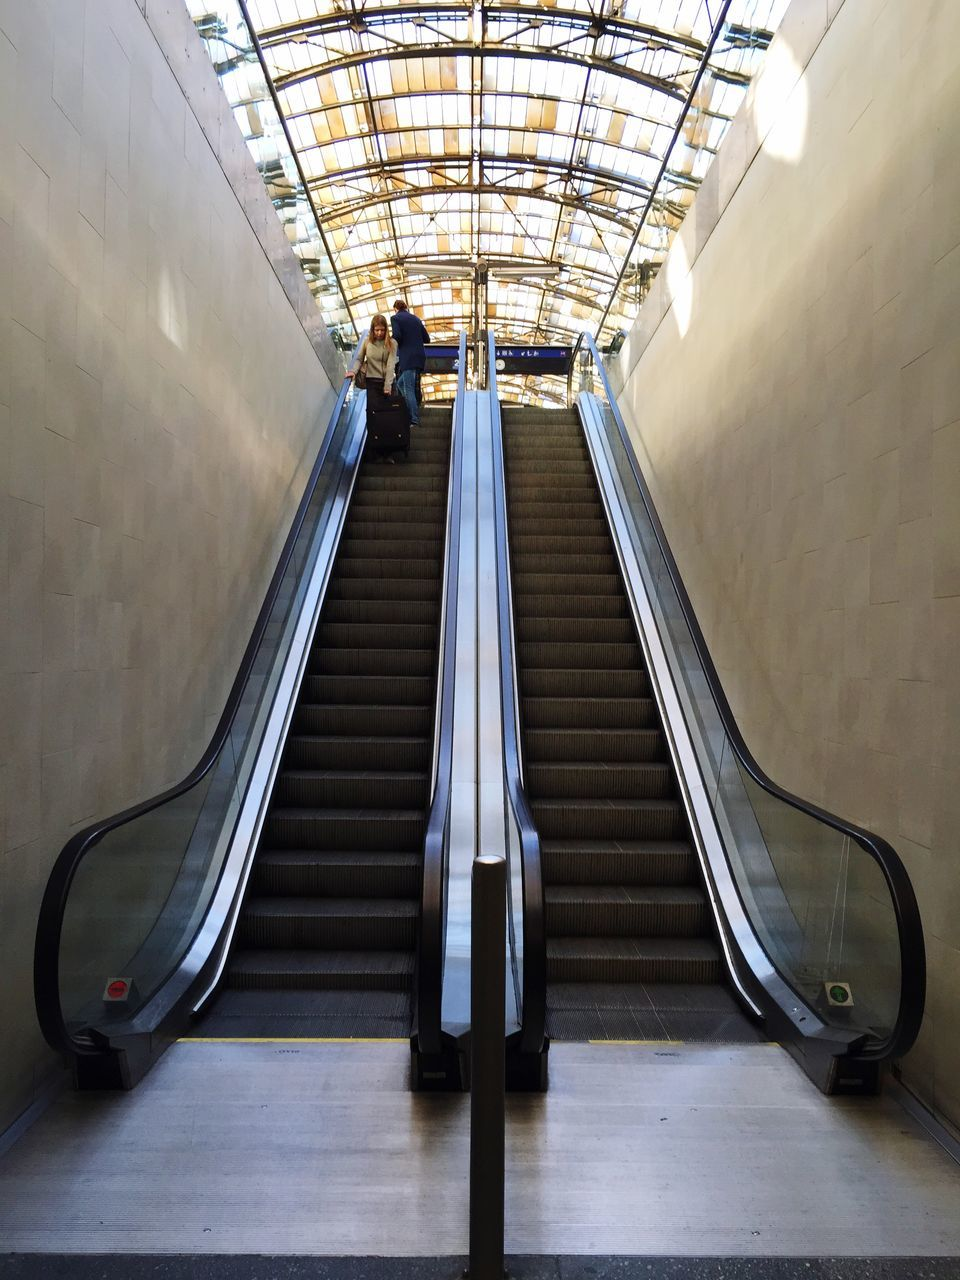 steps and staircases, steps, staircase, indoors, railing, escalator, real people, the way forward, illuminated, architecture, convenience, built structure, low angle view, full length, one person, modern, hand rail, day, people